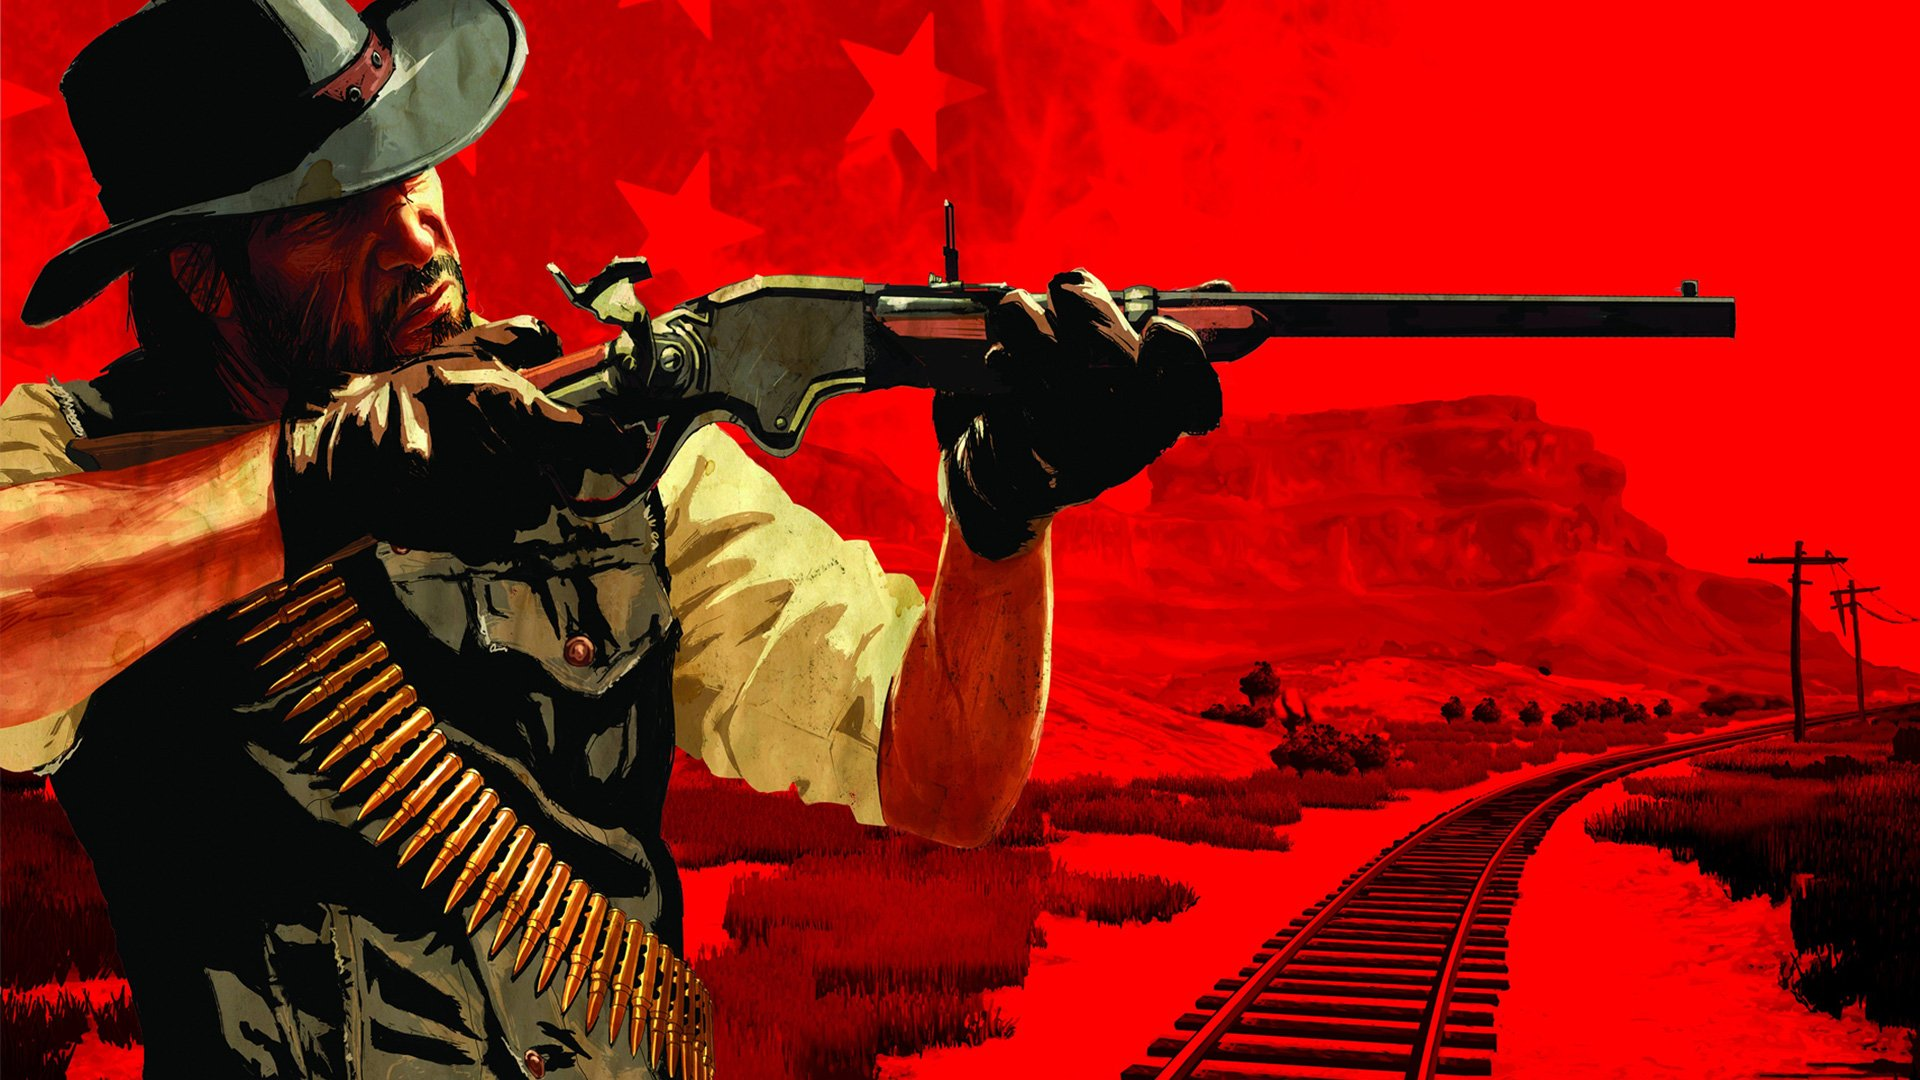 Rumor: Red Dead Redemption Remaster Coming In 2017, Announcement Imminent